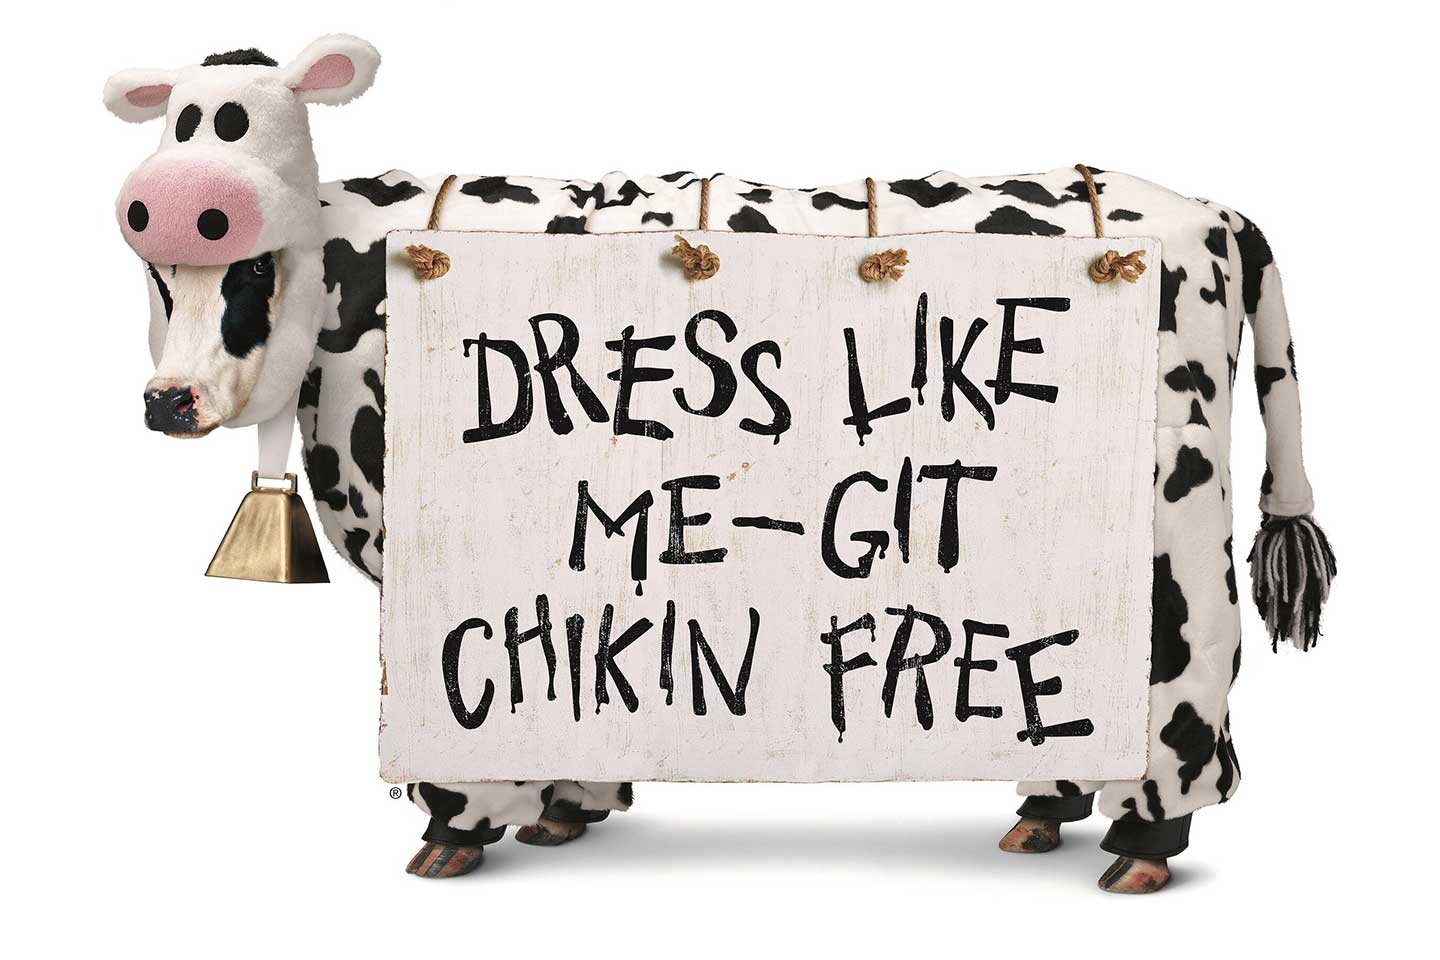 Chick-fil-A Offers Free Entree to Cow-Dressed Customers On